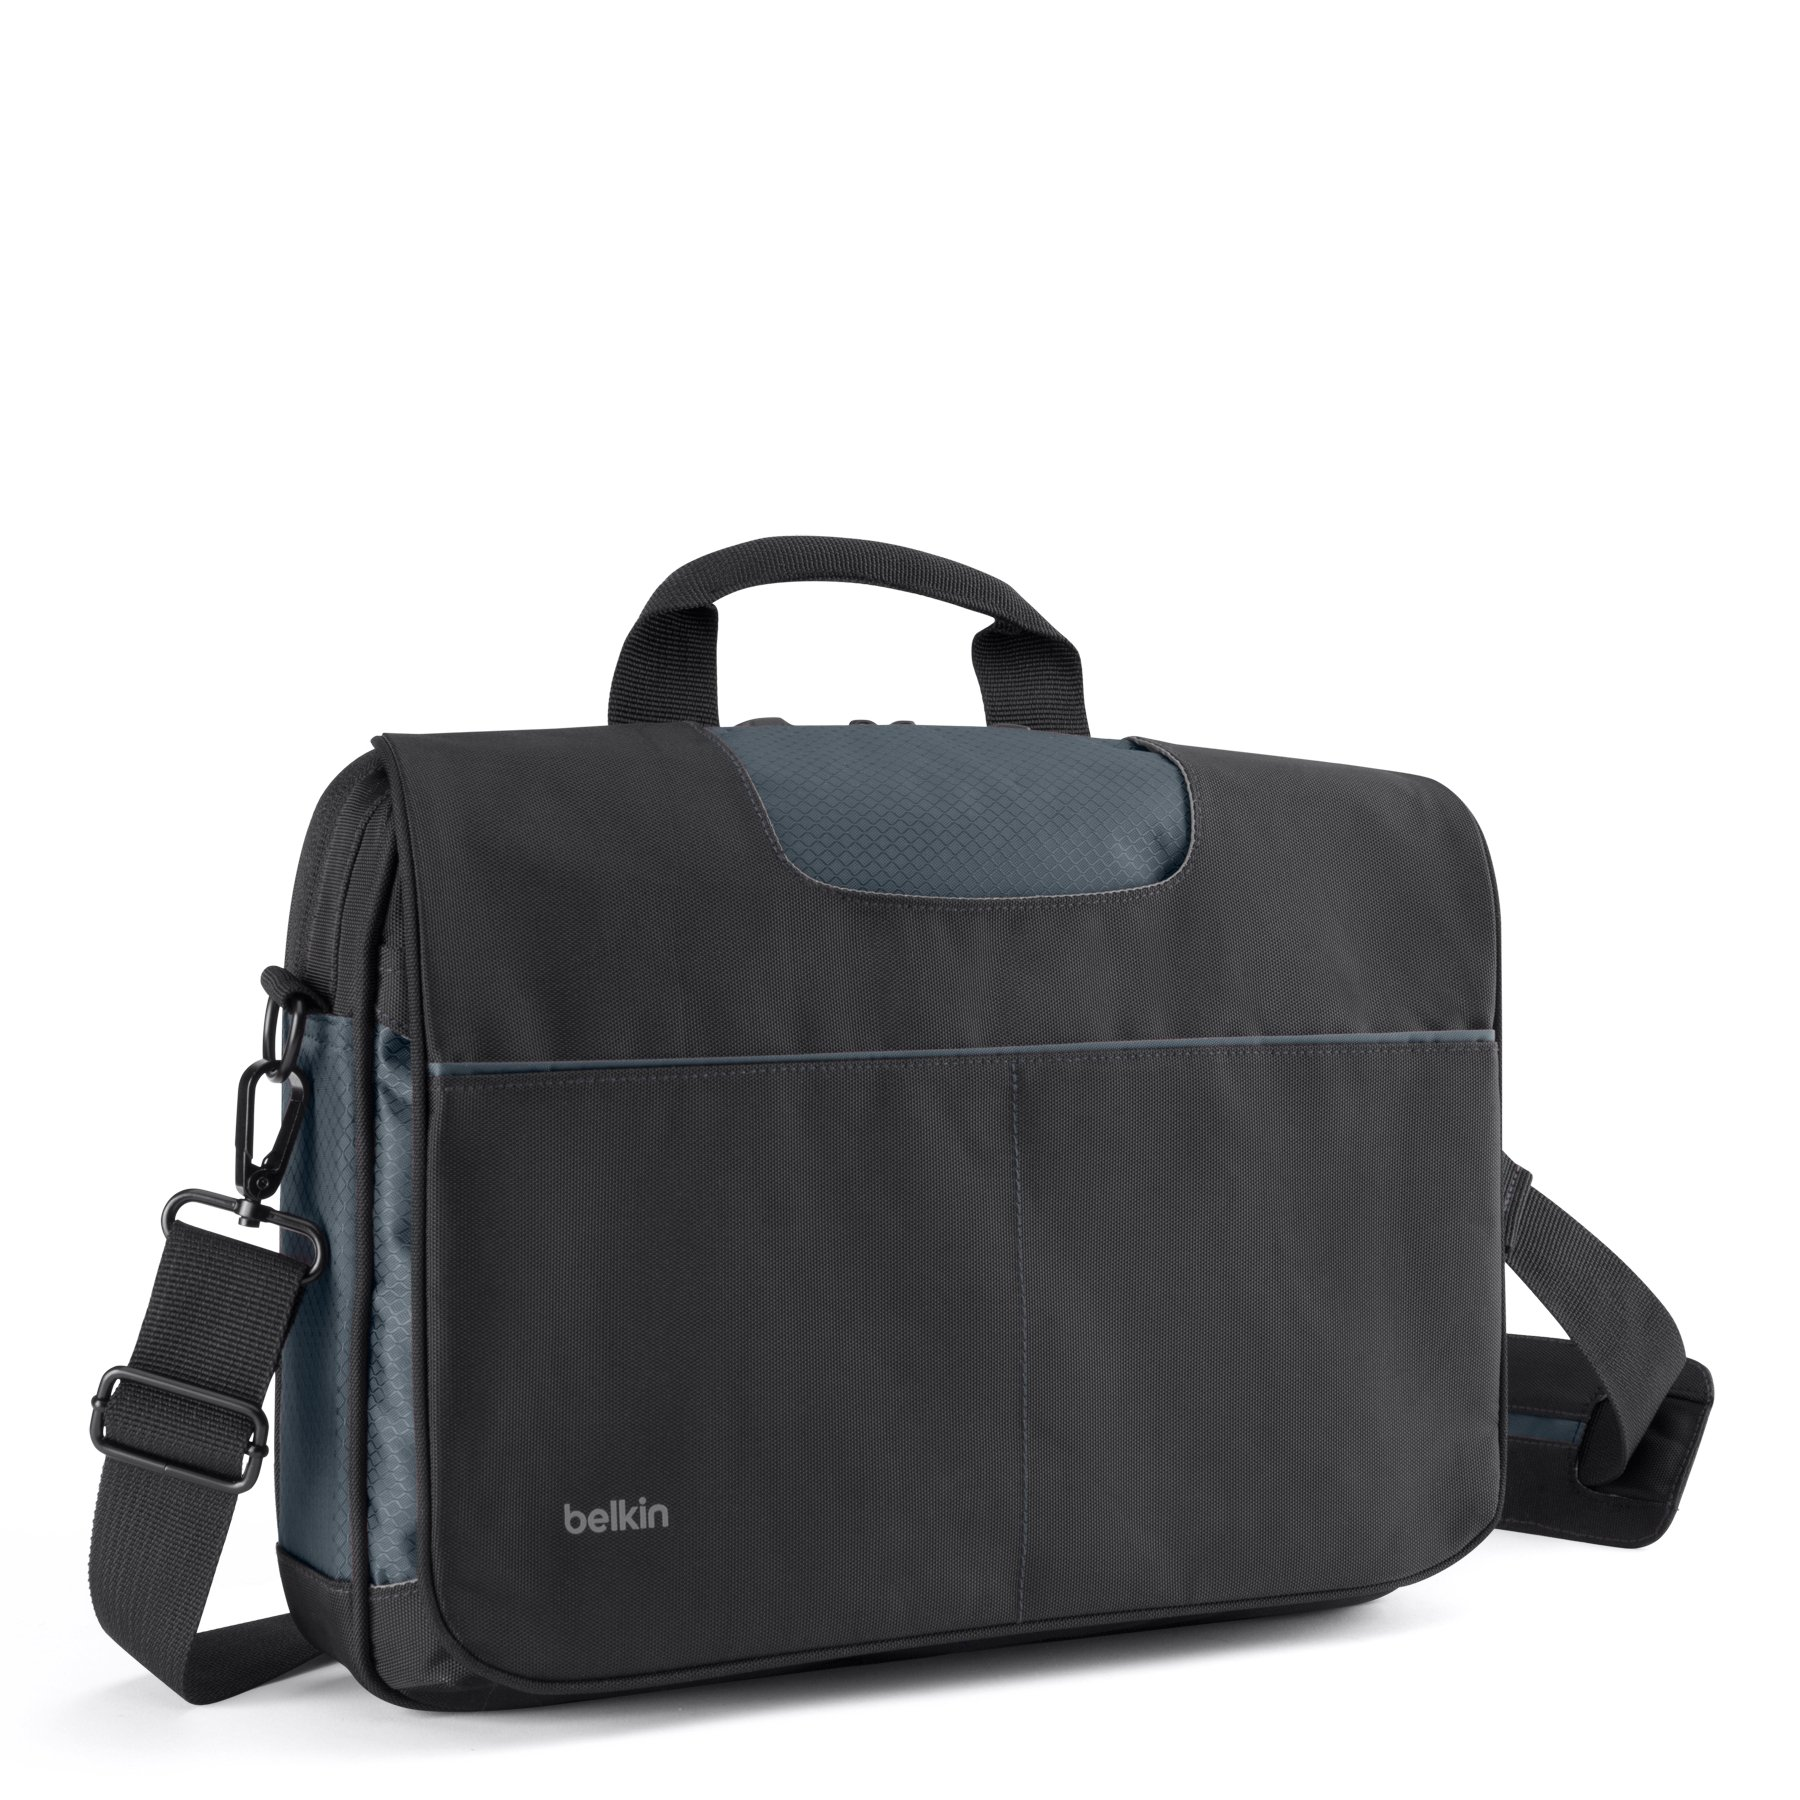 Belkin Messenger Bag for Laptops, Chromebooks, Notebooks, Ultrabooks and Tablets Between 11''-13'', Designed for School and Classroom